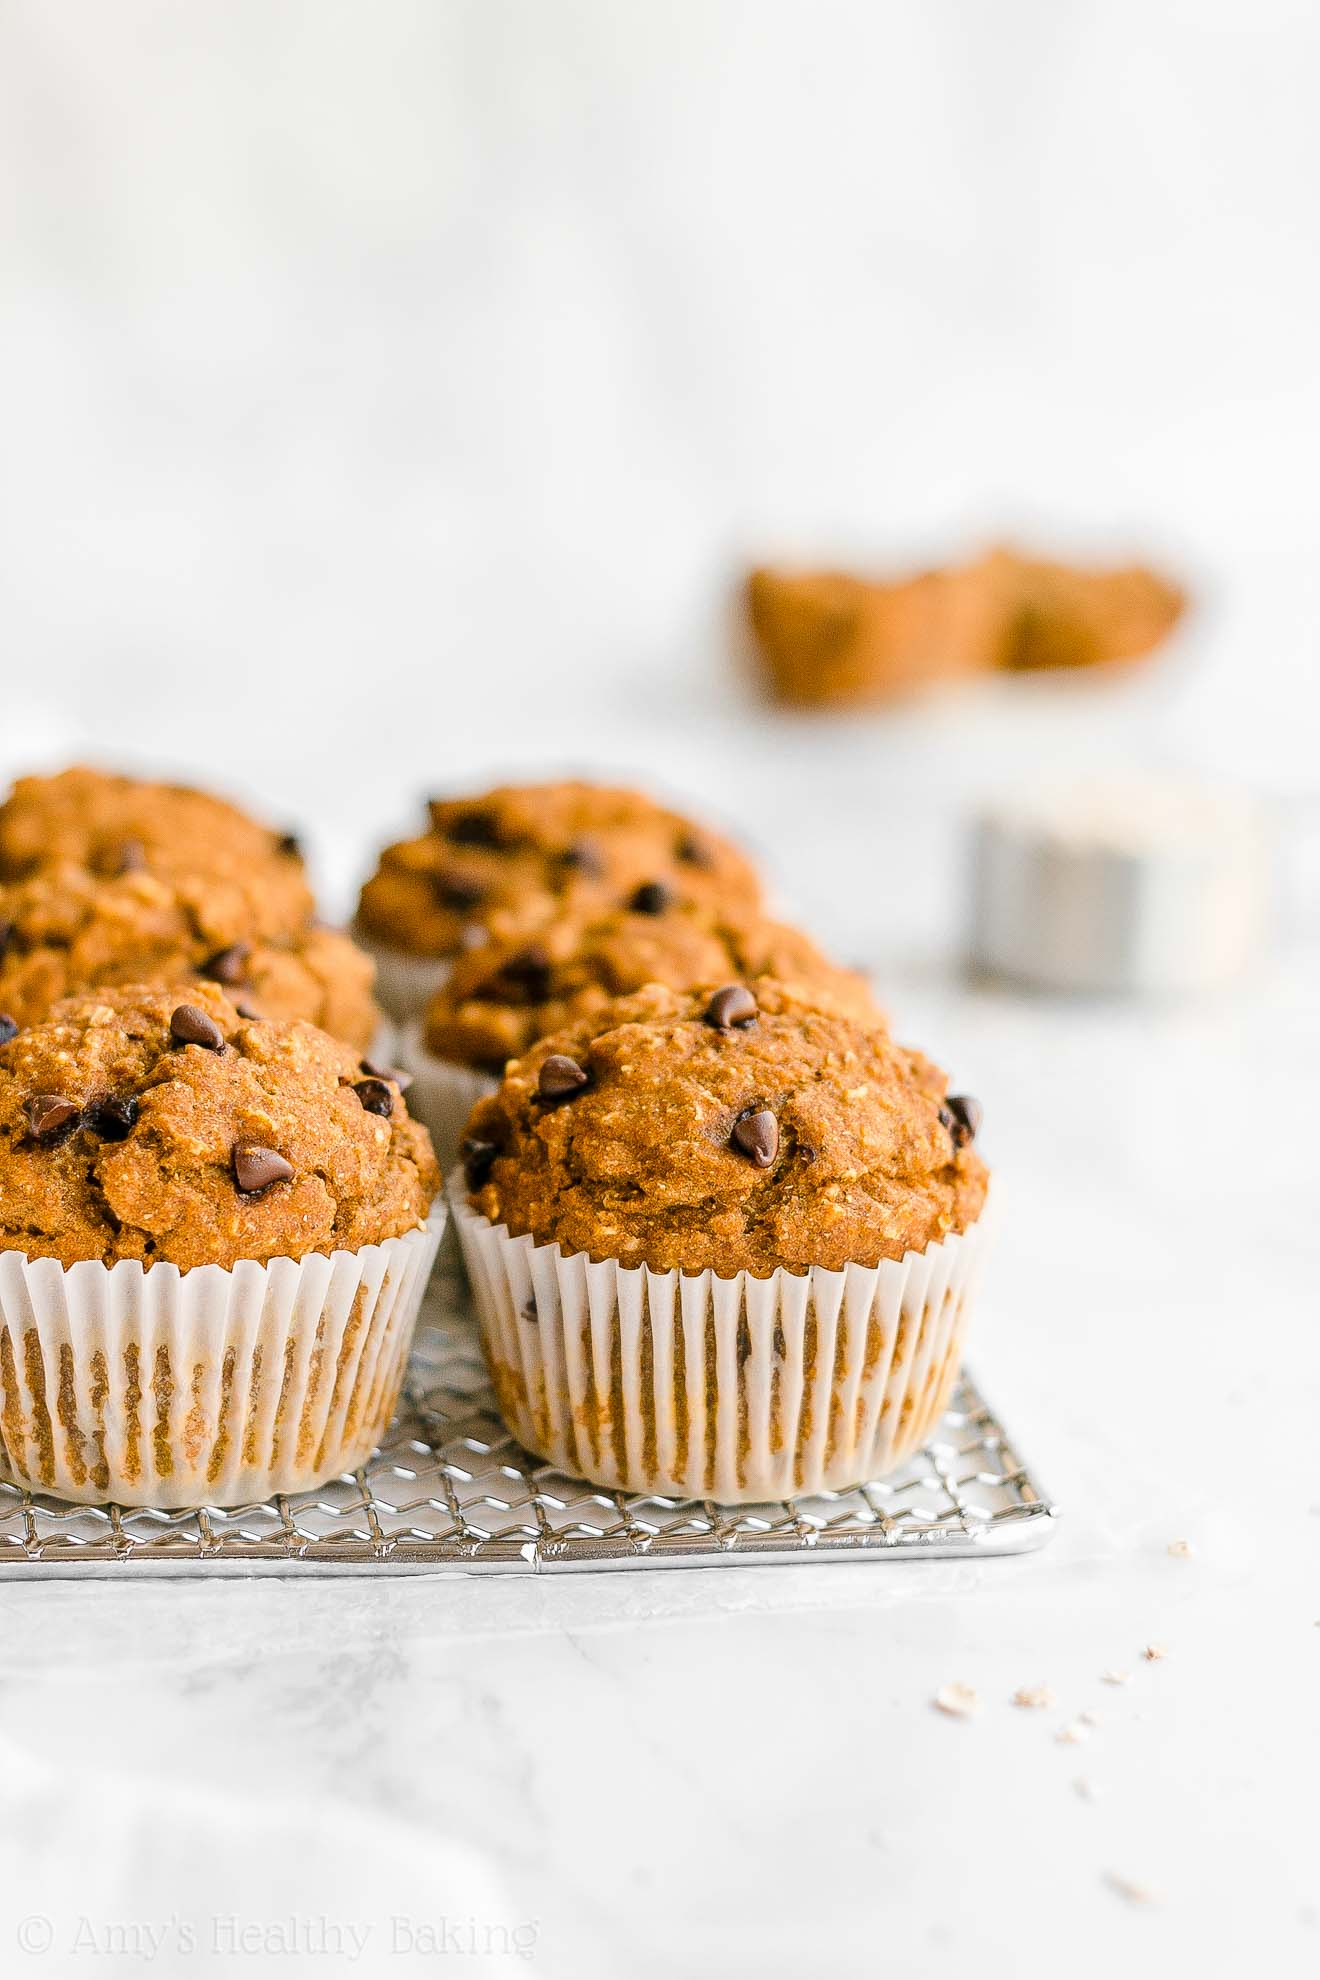 Moist Healthy Whole Wheat Greek Yogurt Pumpkin Chocolate Chip Oatmeal Muffins